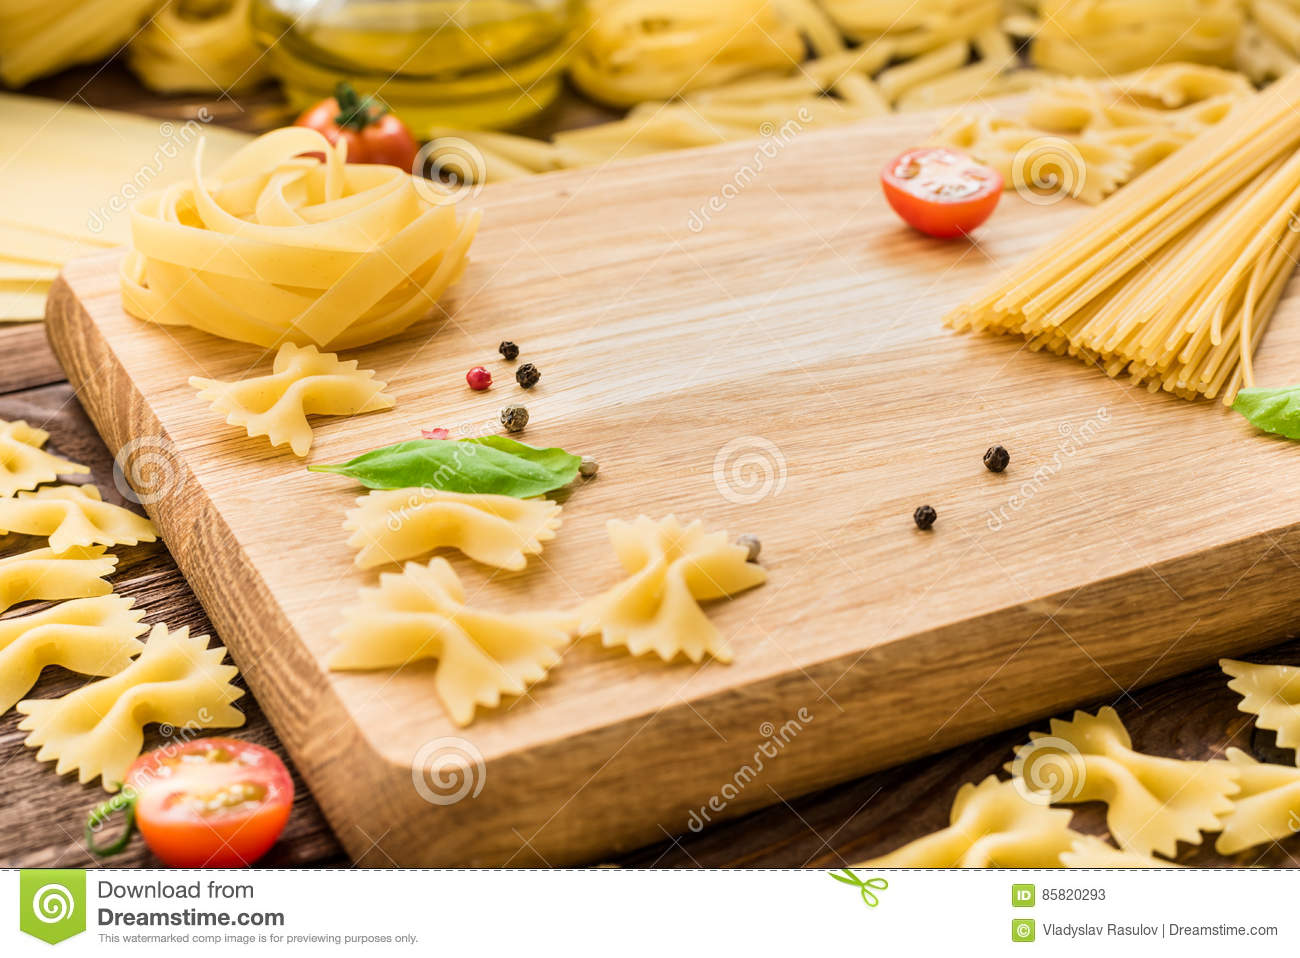 dry pasta When it comes to pasta, you can choose between fresh pasta and dry keep reading to find out what's the difference and when to use which kind.